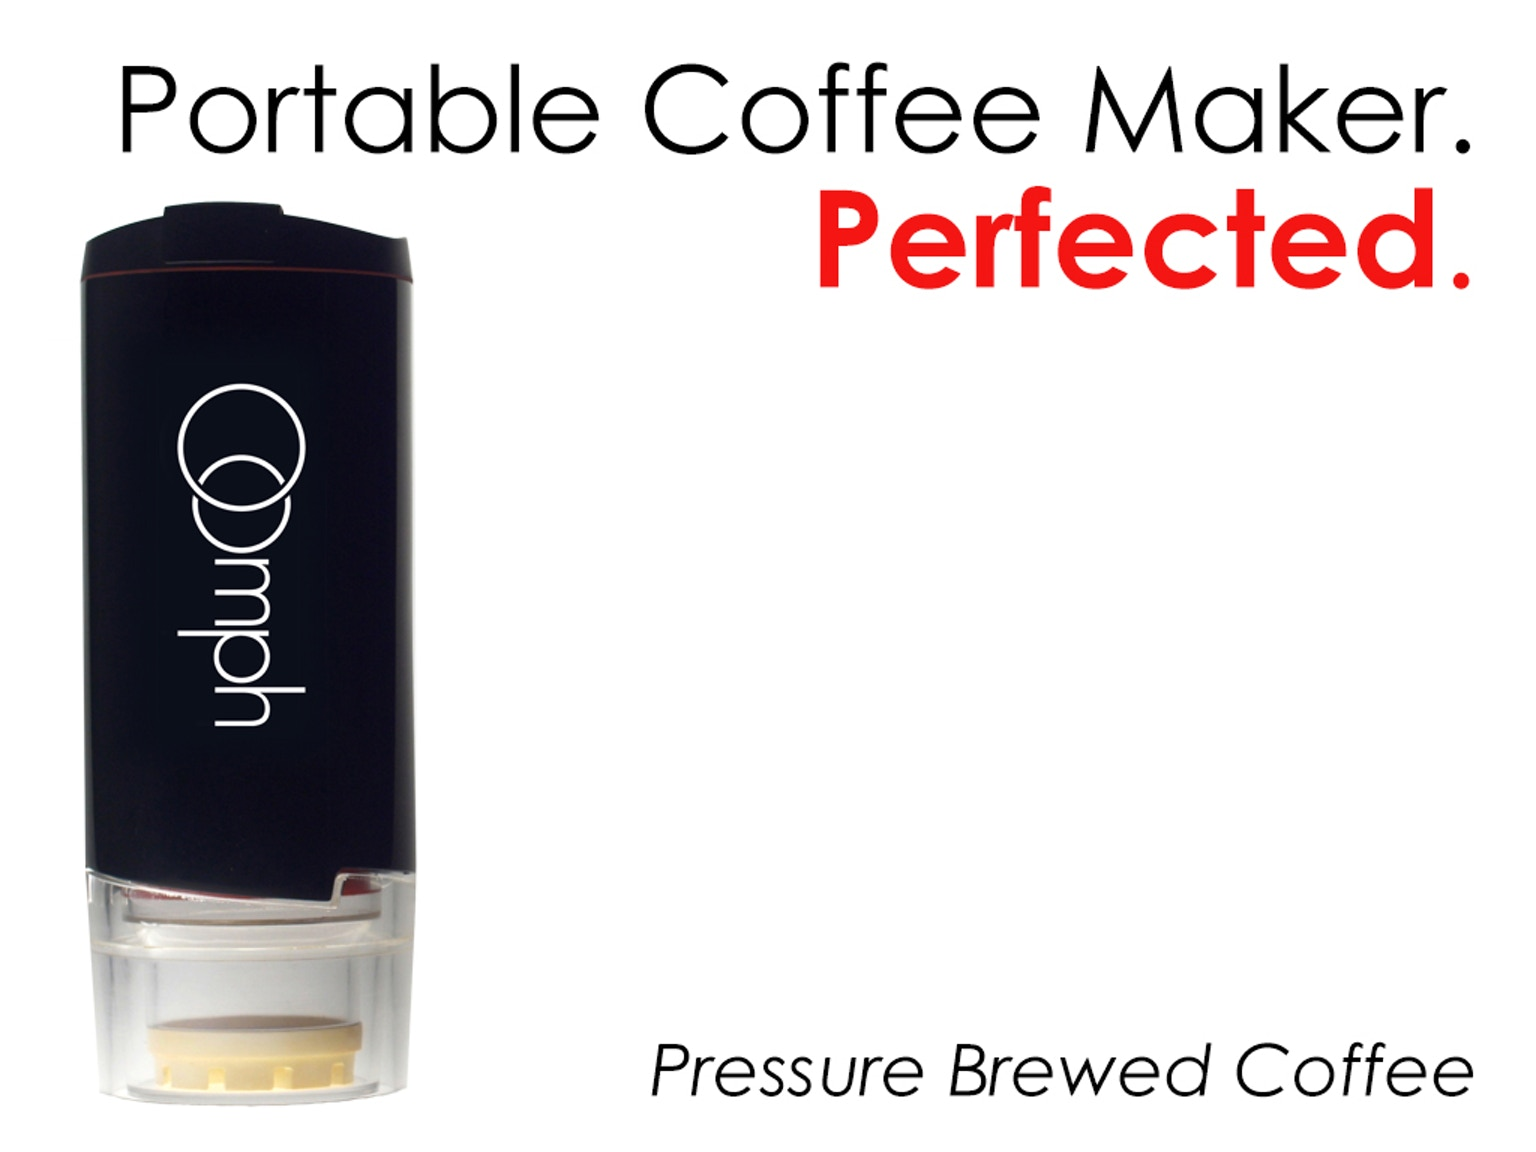 The Oomph Hand Powered Portable Coffee Maker by Oomph Coffee Kickstarter